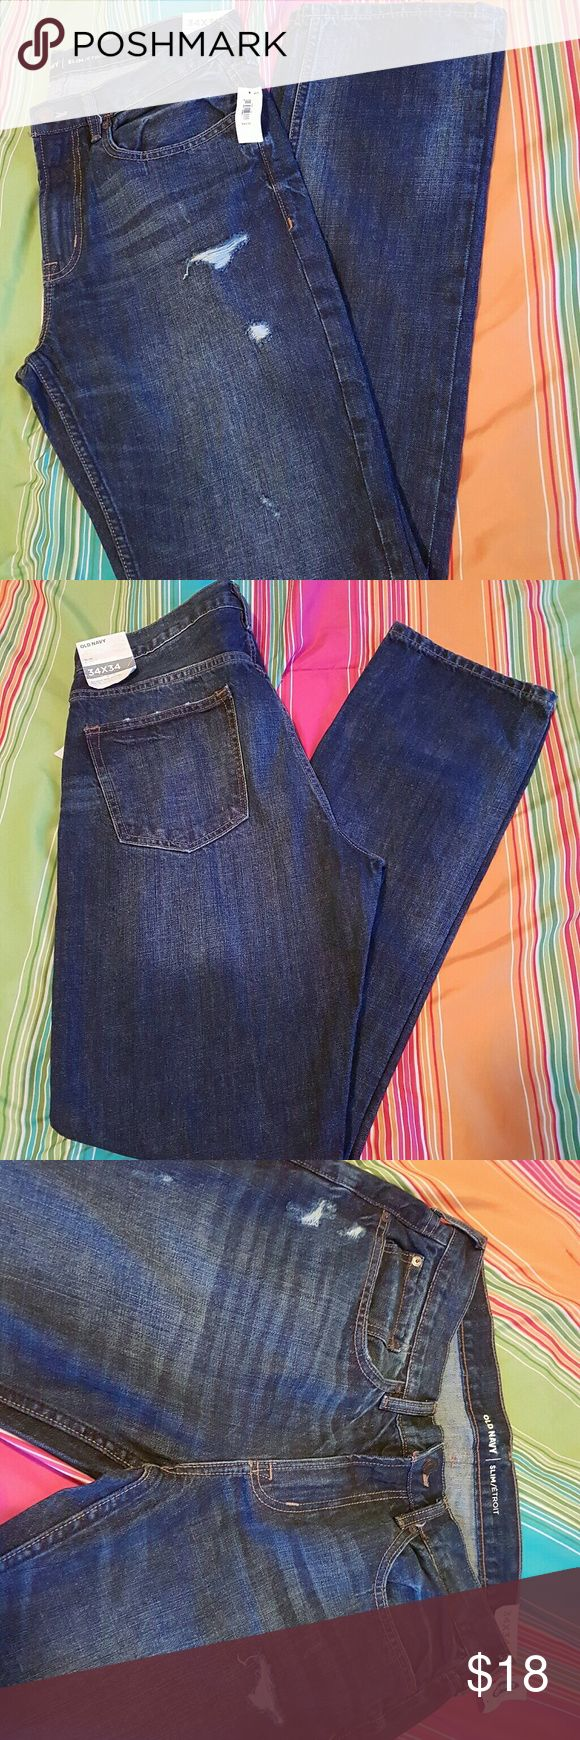 NWT Old Navy men's jeans size 34 New with tags Old Navy slim cut jeans, size 34 x 34.  Thanks for looking. Old Navy Jeans Slim